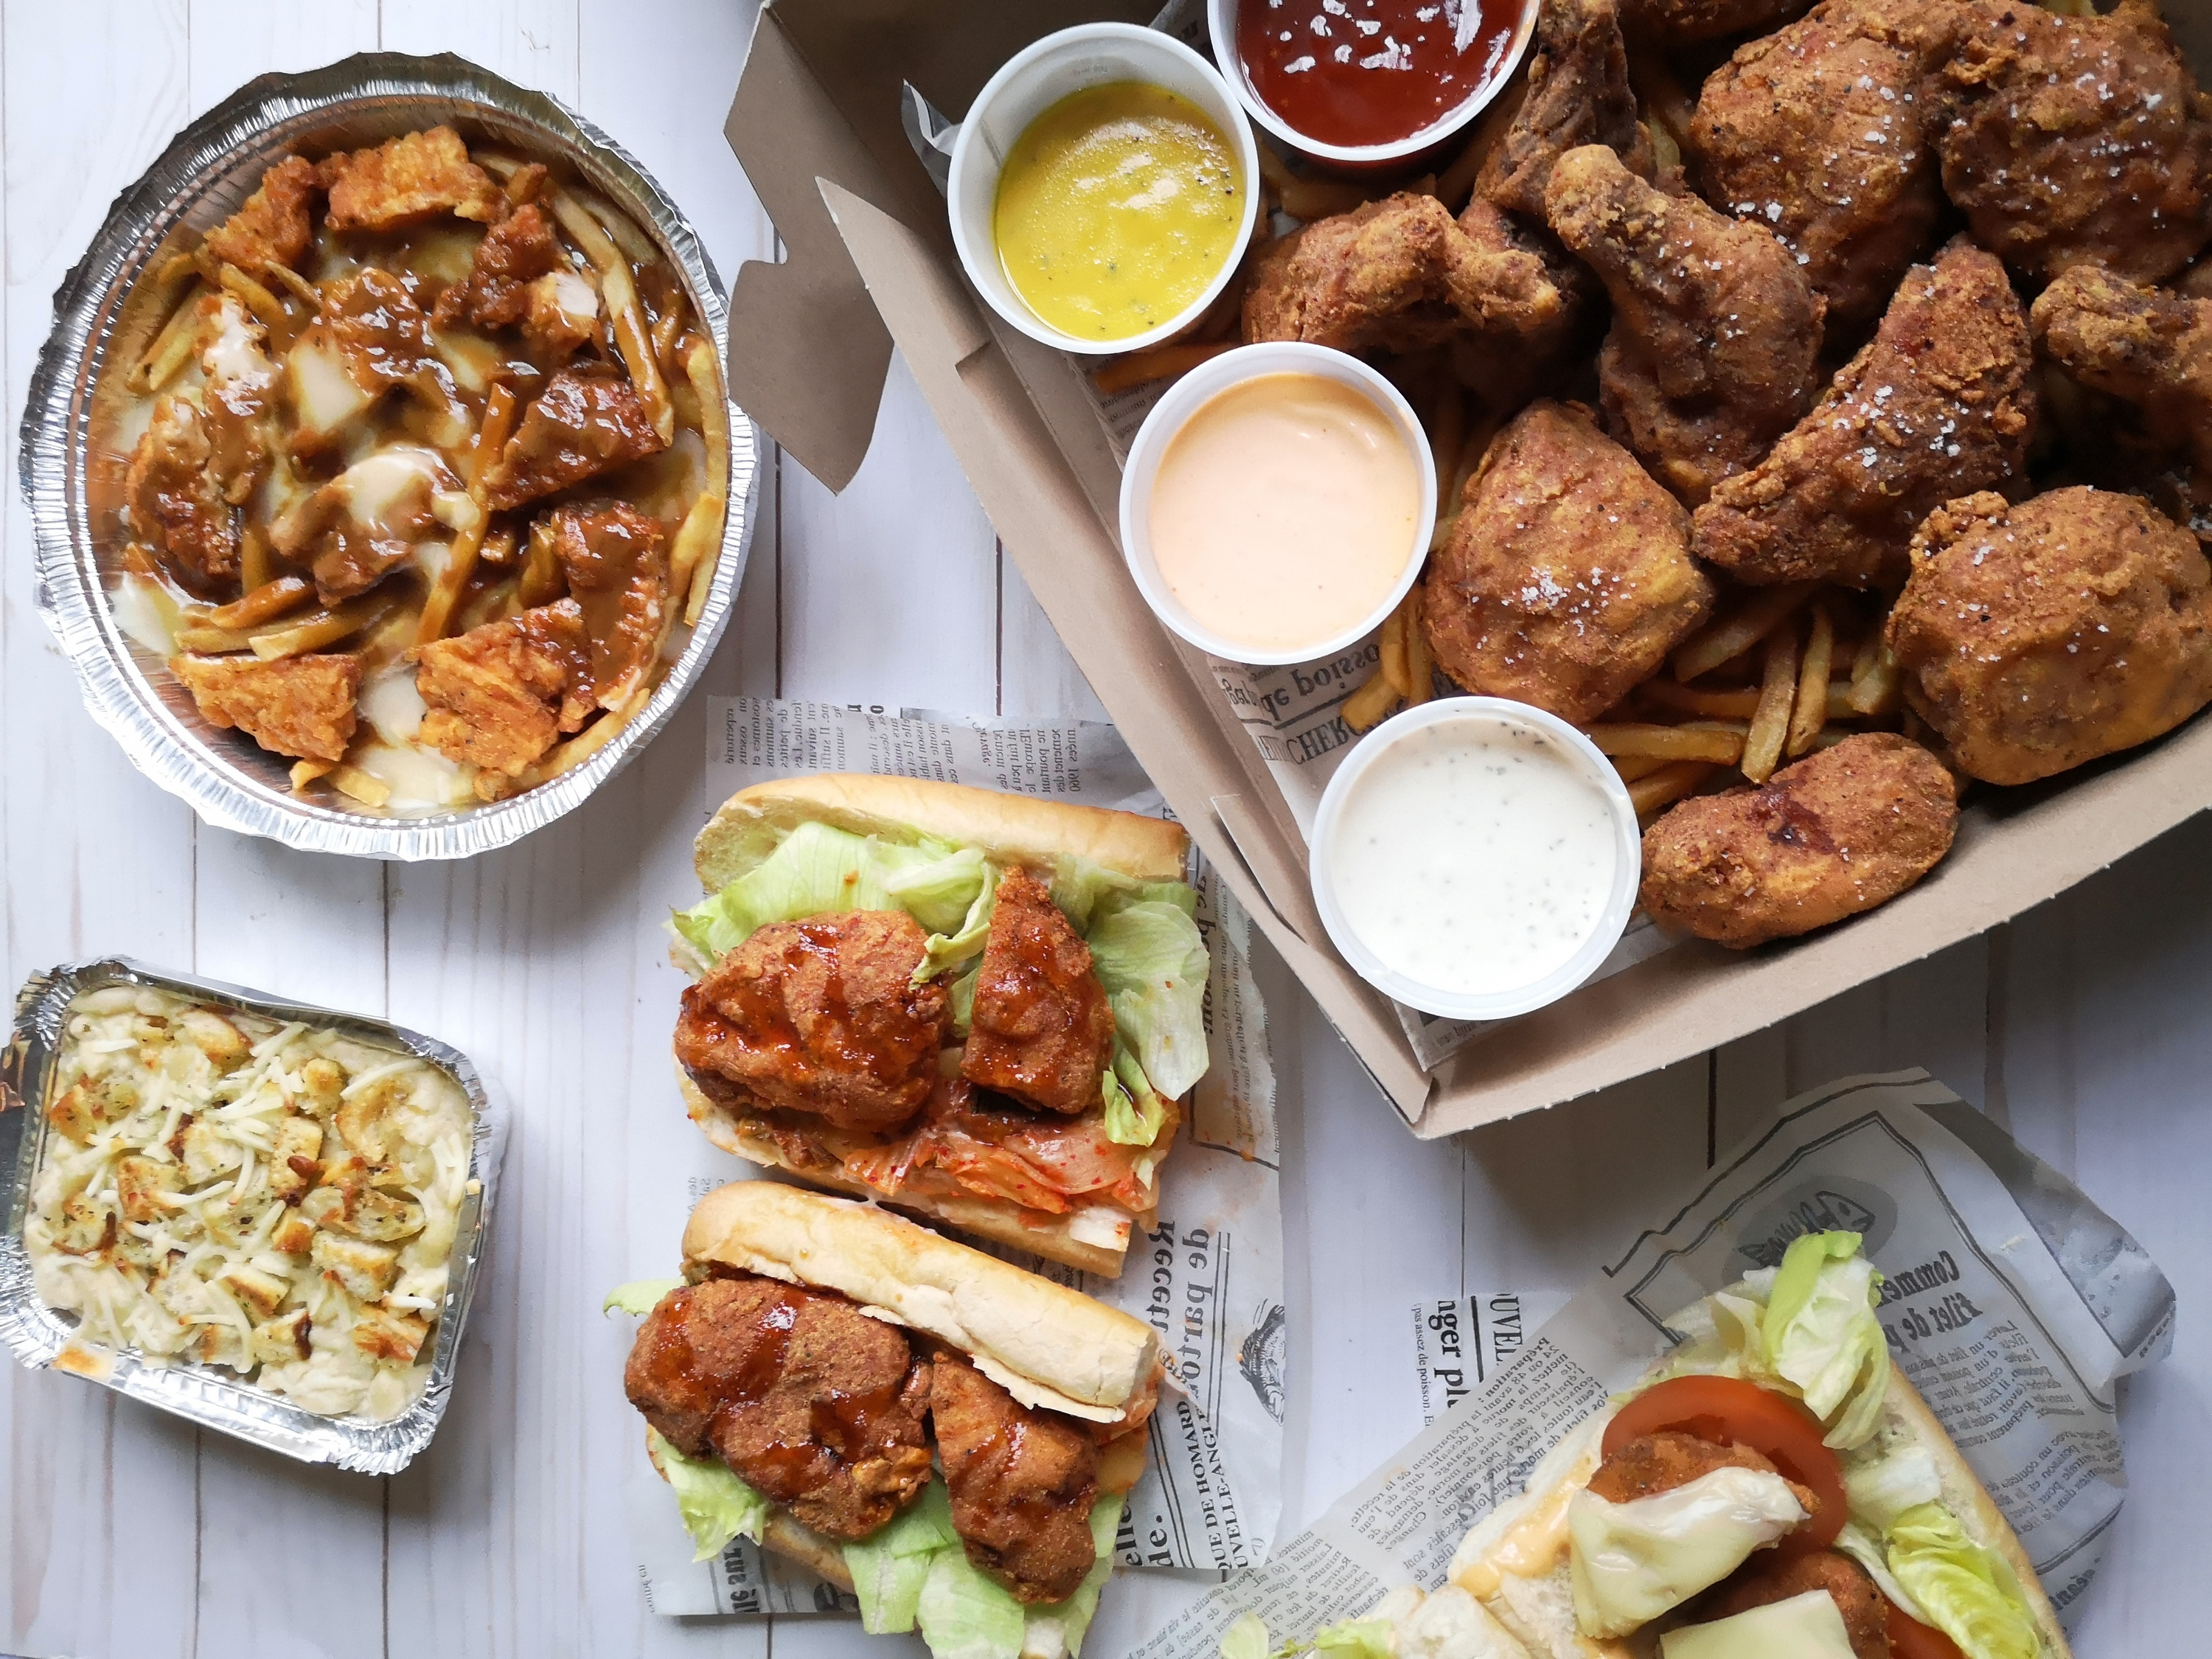 Chef Hakim Chajar's new fried chicken joint Rubie's is golden, crispy and gluten-free